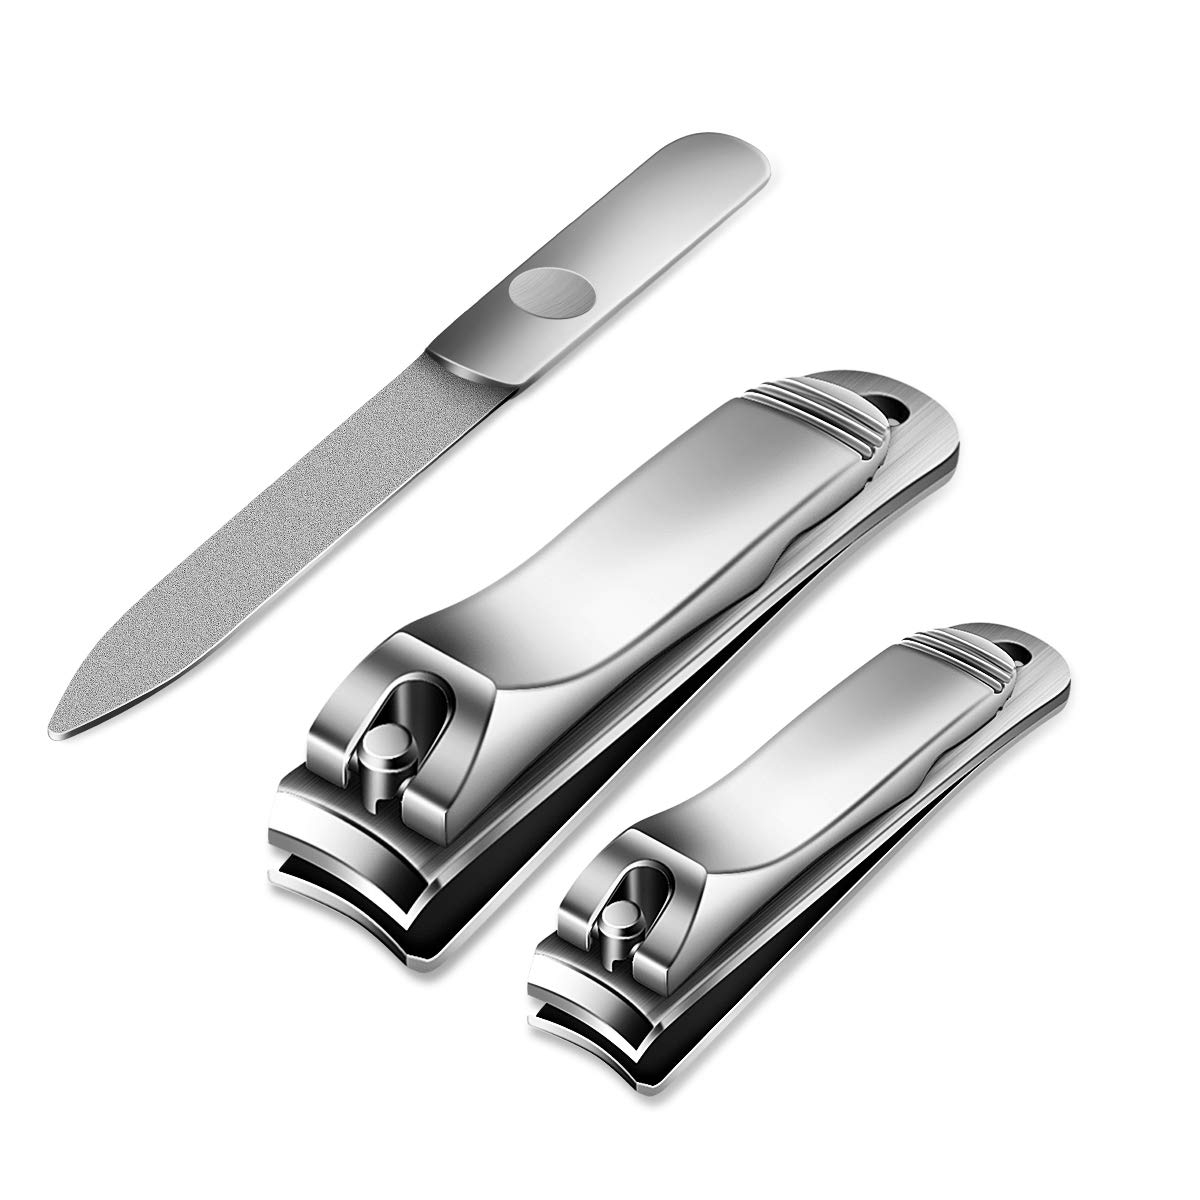 ETEREAUTY Nail Clippers Set with Nail file Stainless Steel Fingernails Toenails Clippers Sharp Nail Cutter in Leather Case (3Pcs)